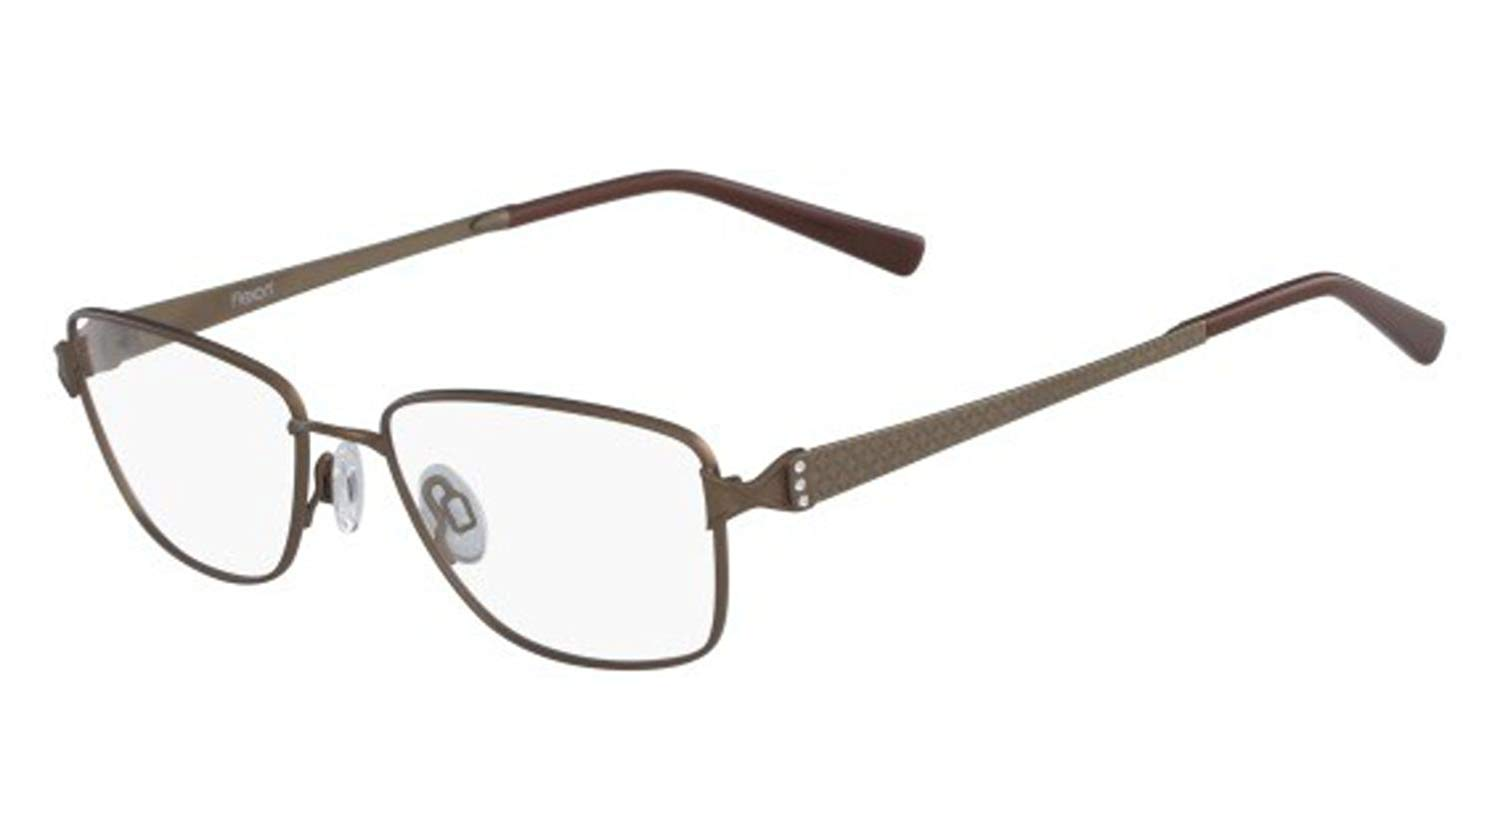 9836702aa6 Get Quotations · Eyeglasses FLEXON LANA 210 BROWN